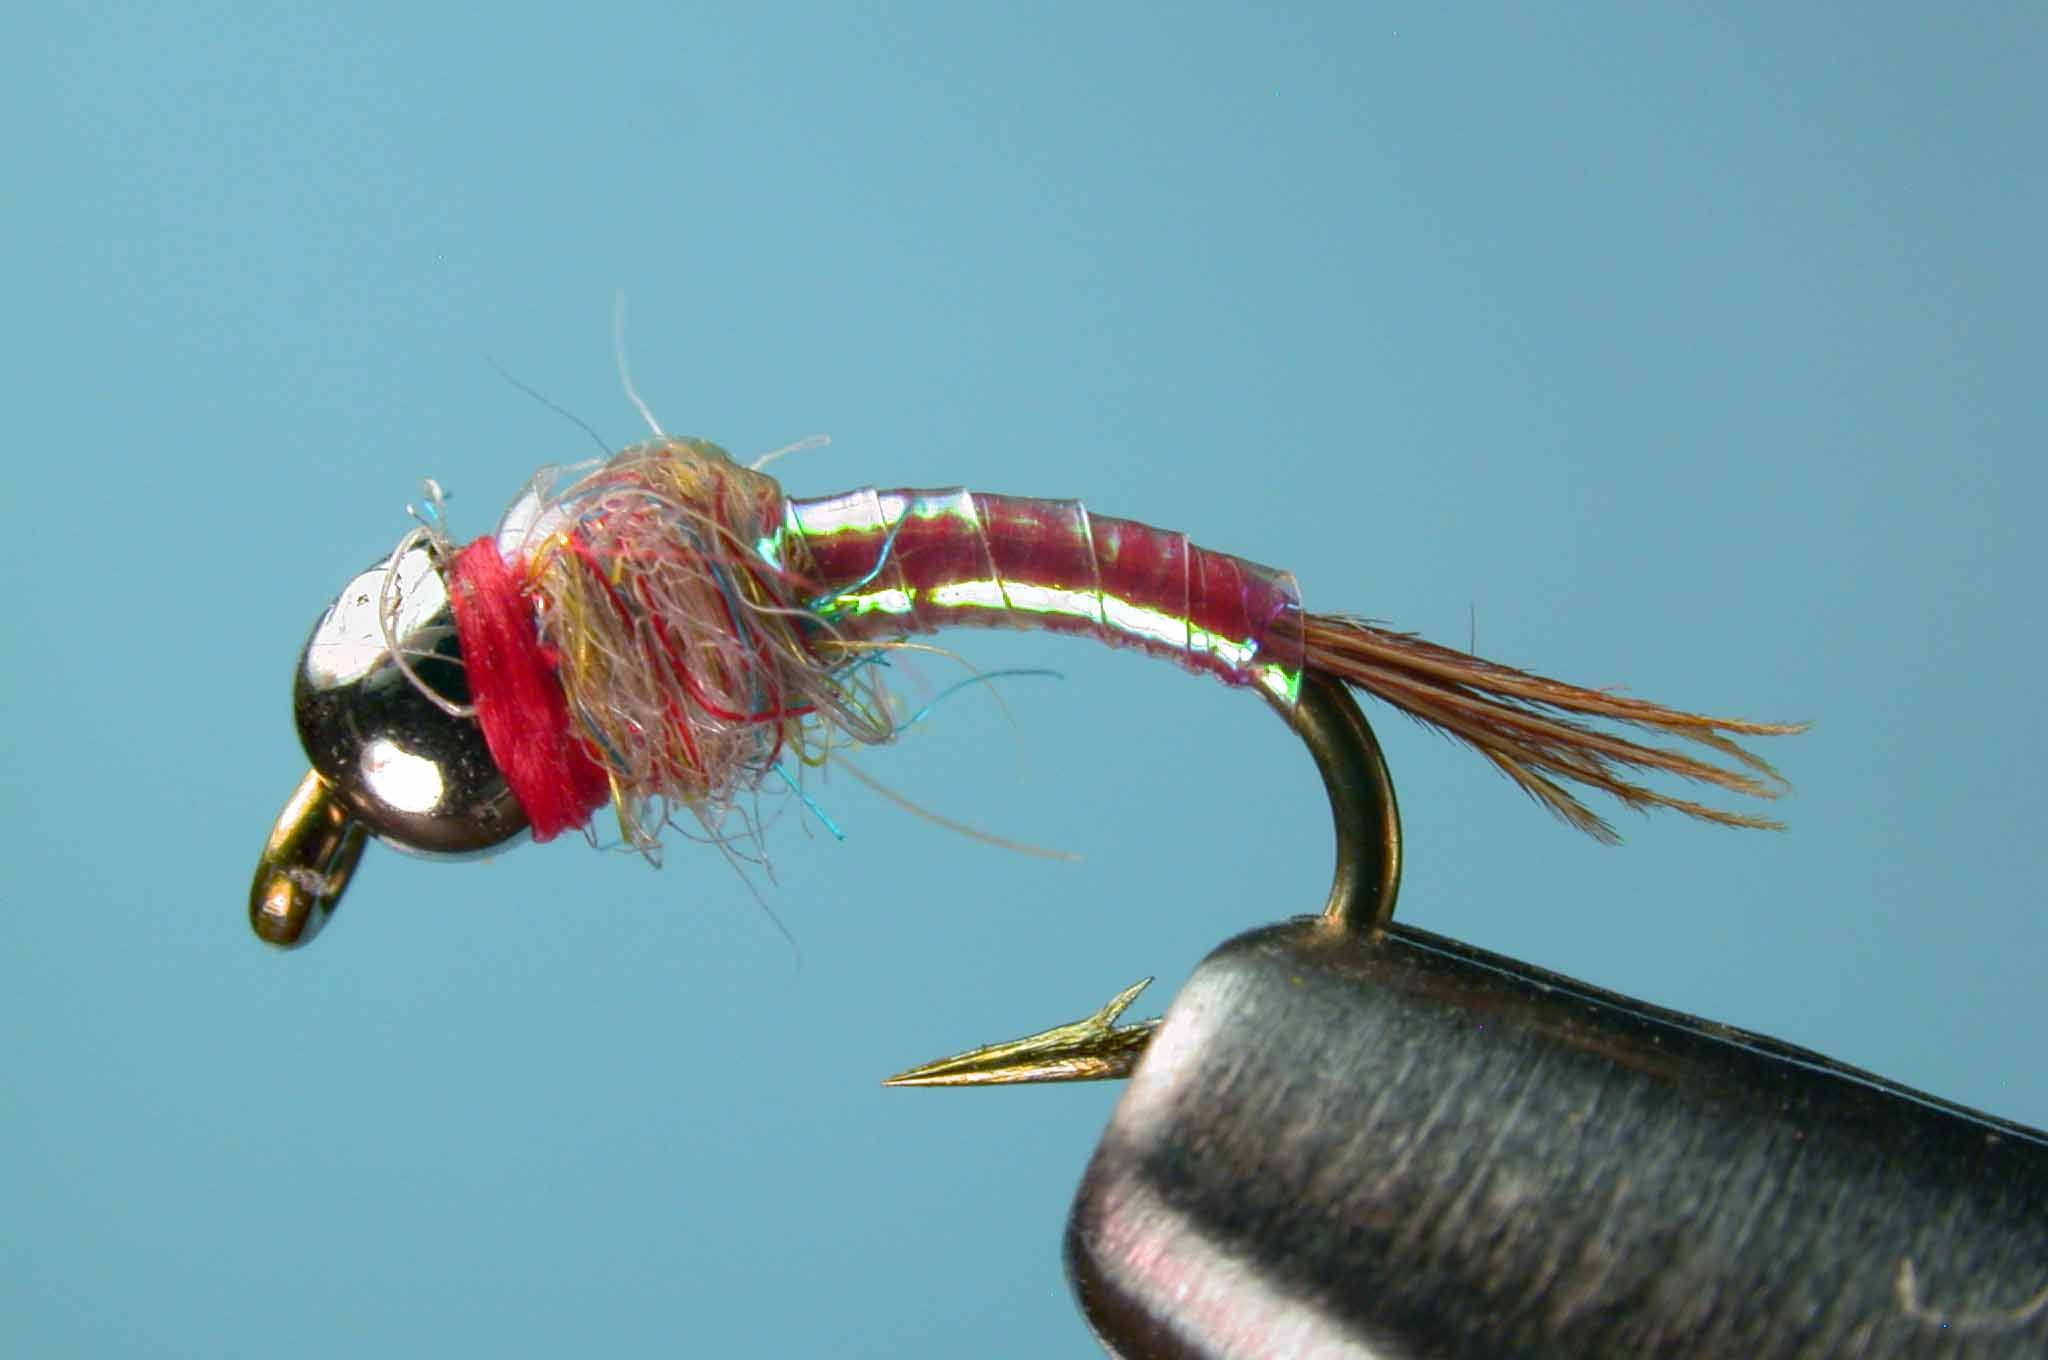 Size 12 14 or 16 6 Chironomid//Blood Midge Flies for Trout